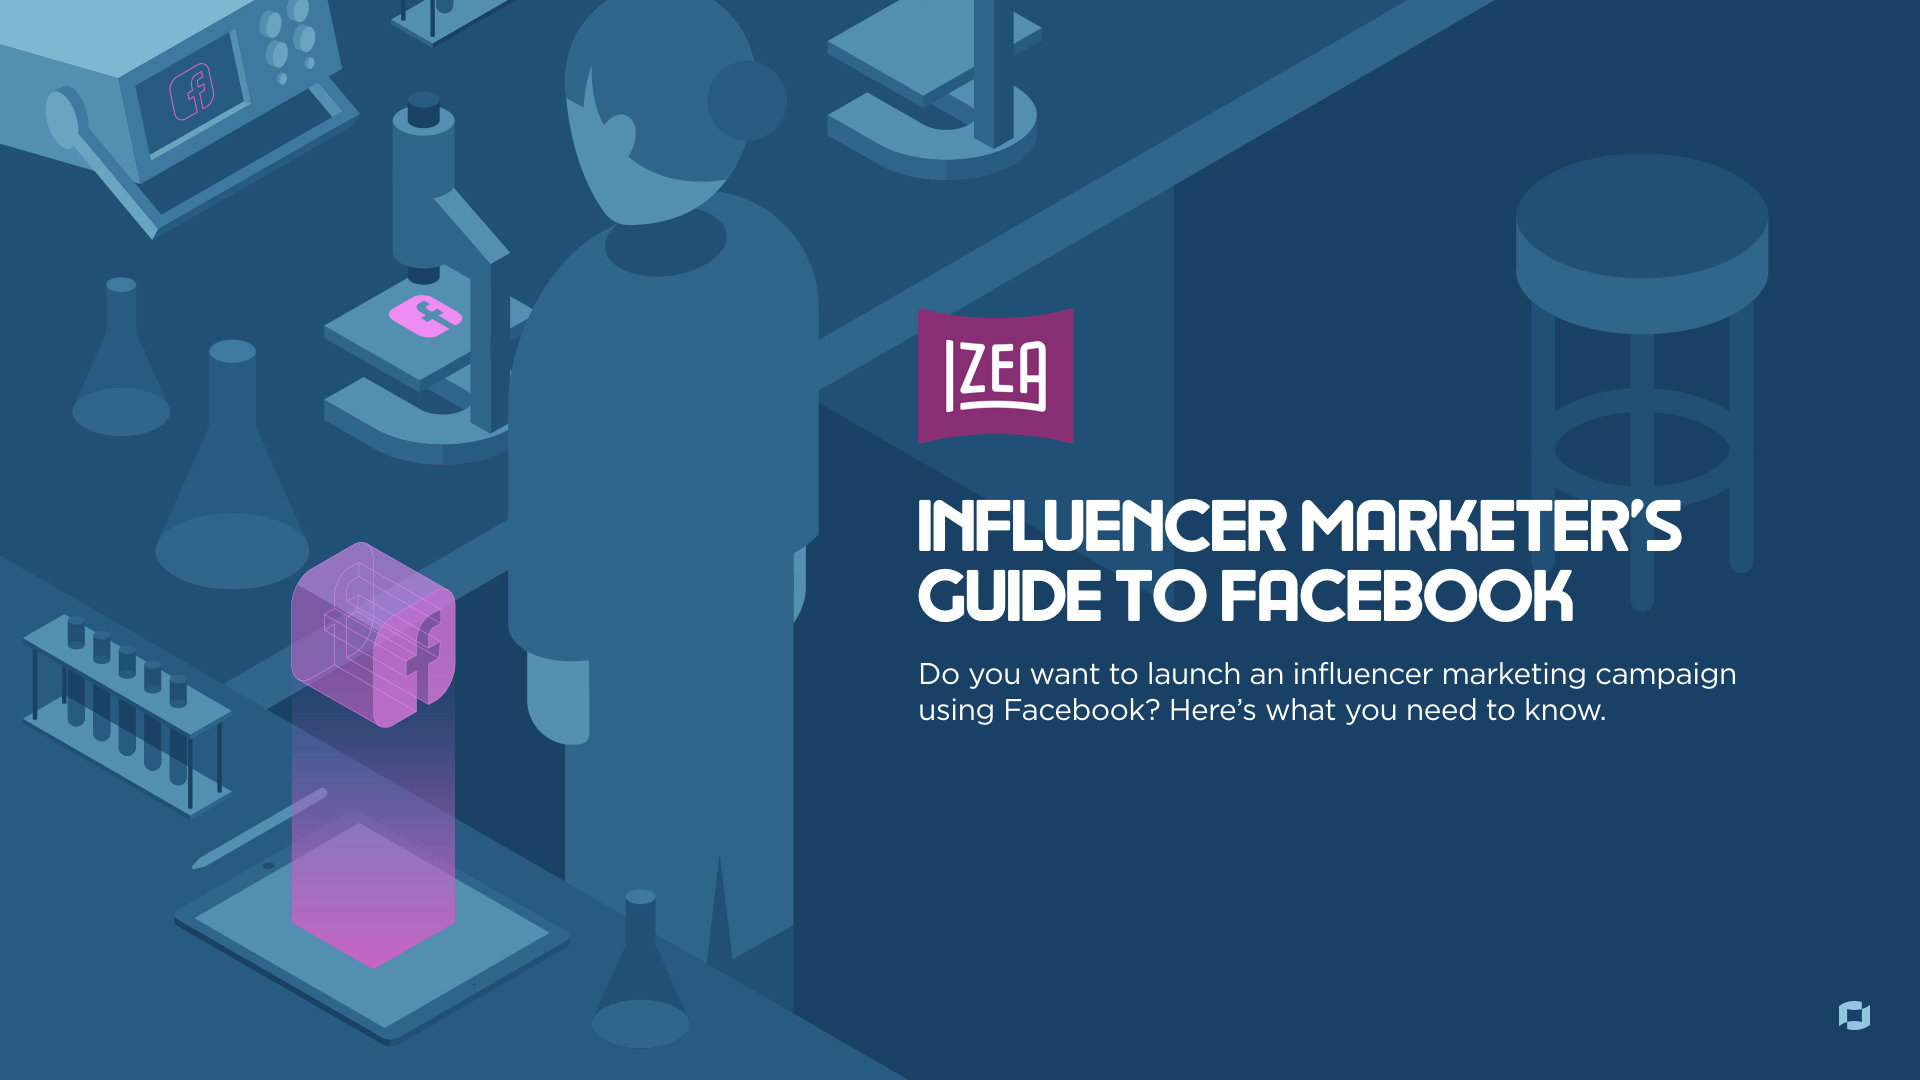 Guide to Facebook Influencer Marketing